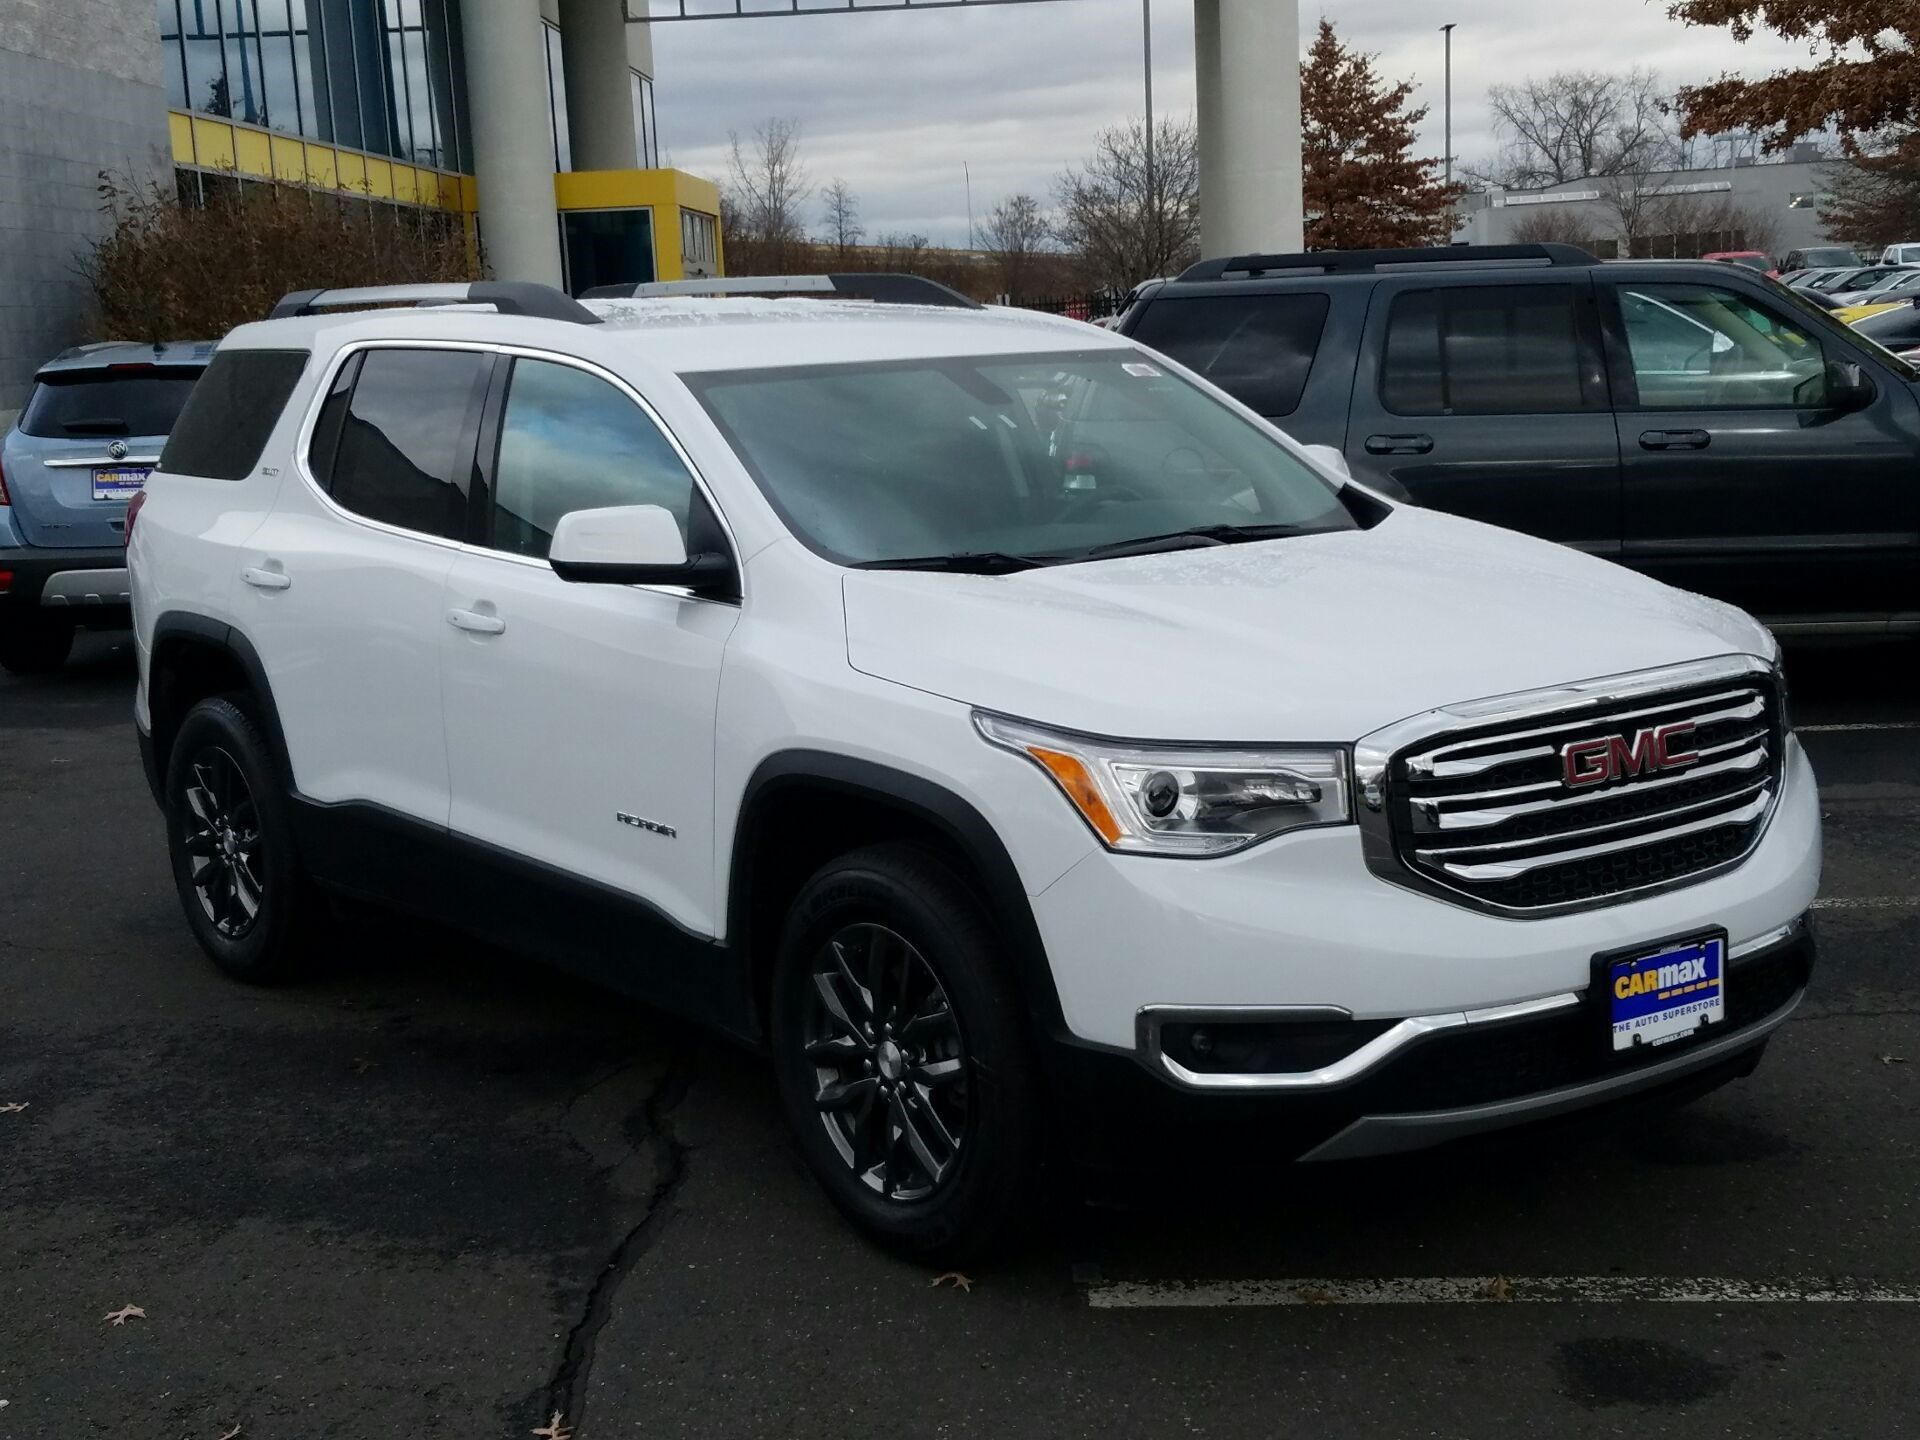 Used 2018 Gmc Acadia In Hartford Connecticut Carmax Gmc